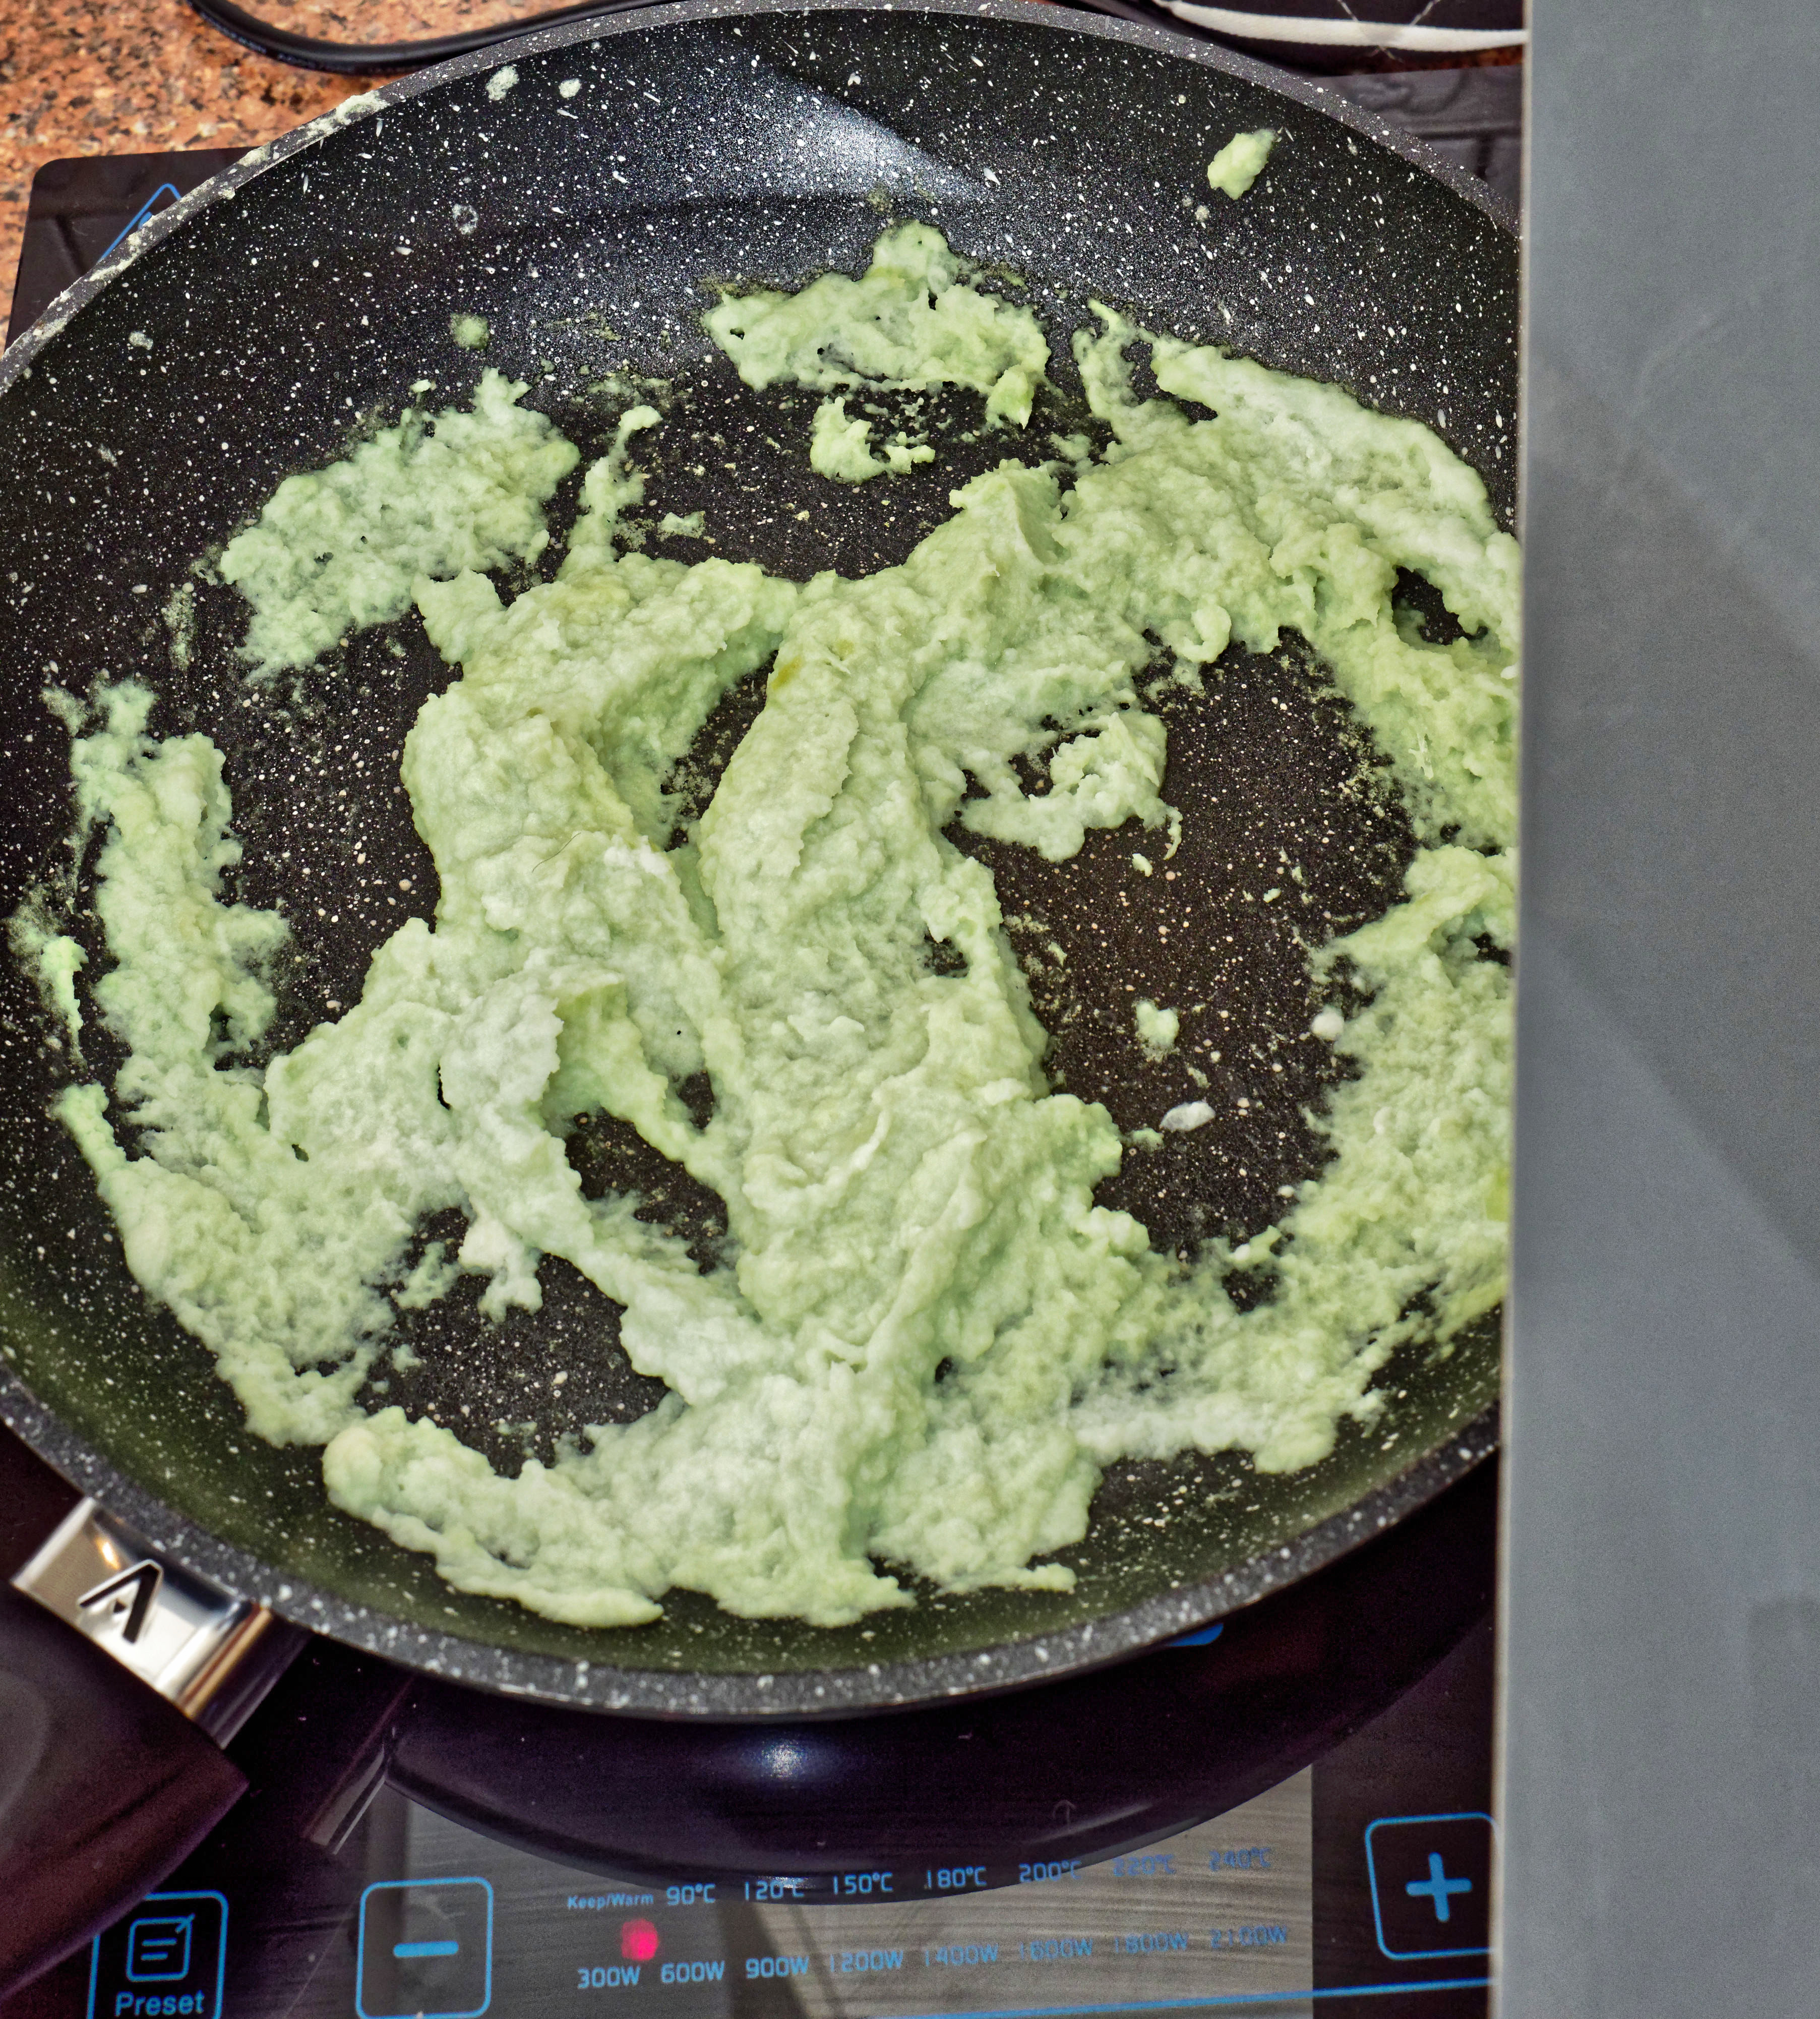 This should be Green-onions-1.jpeg.  Is it missing?